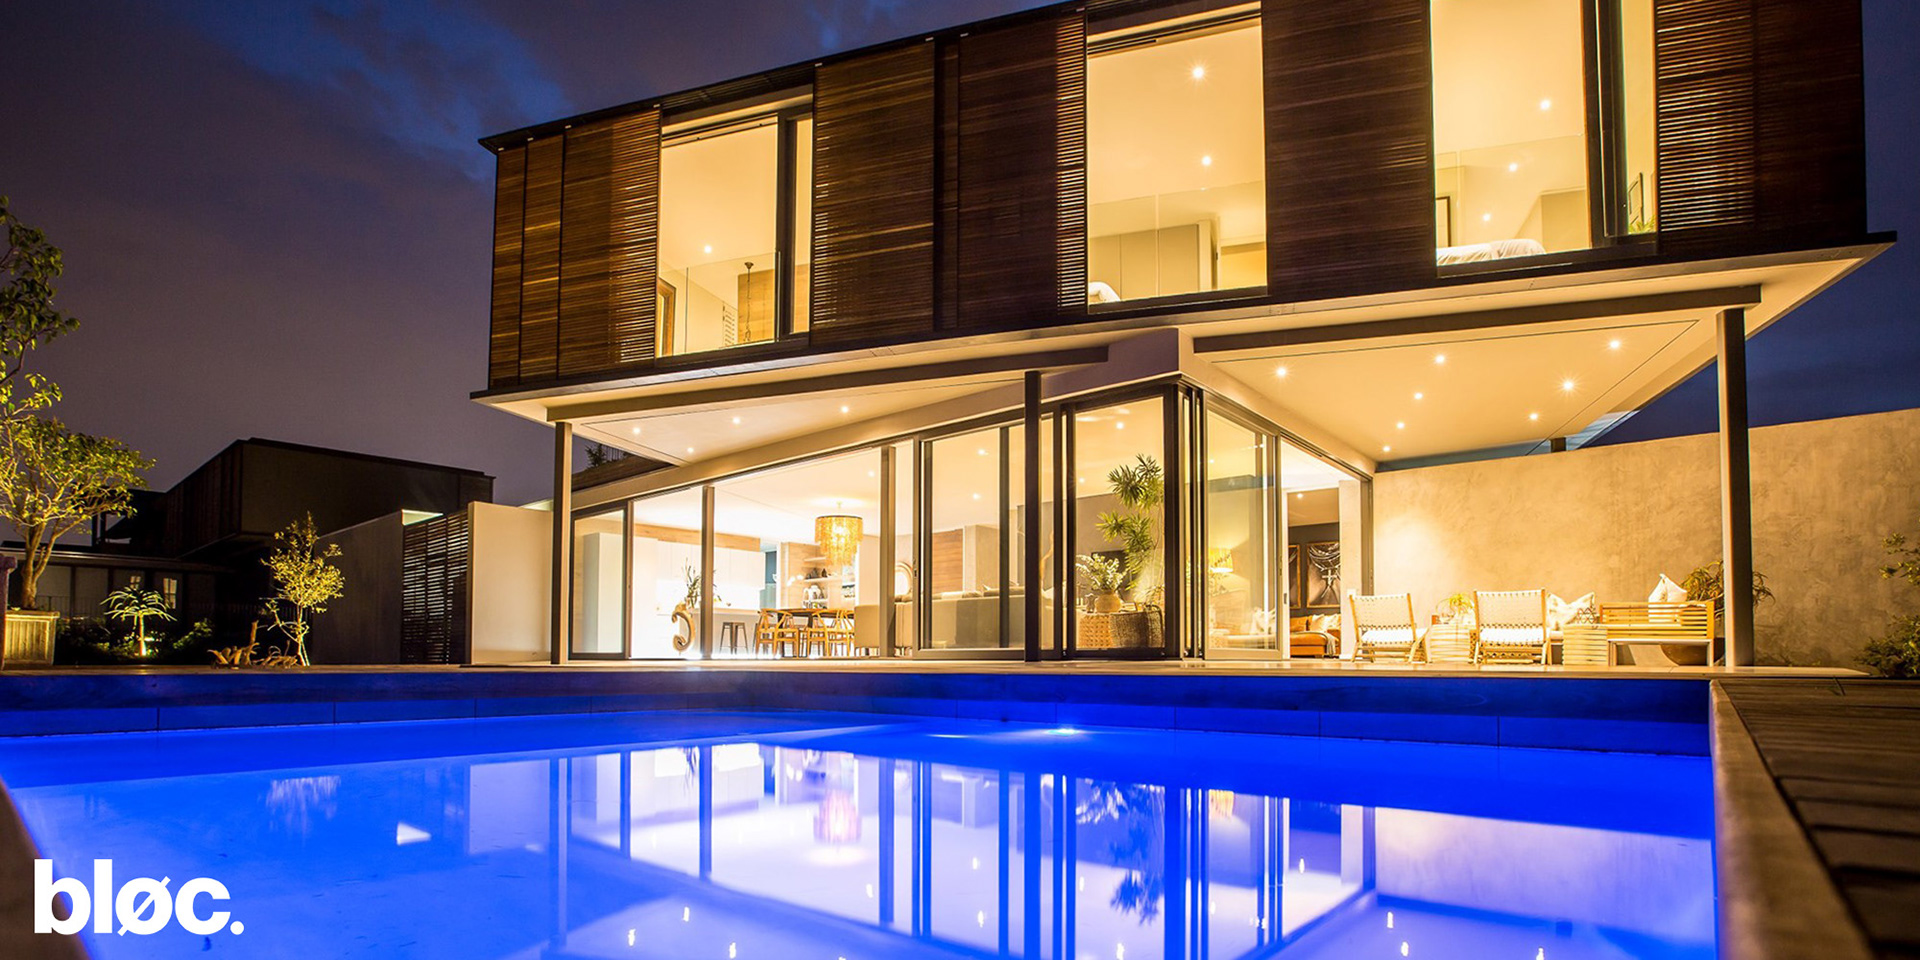 Modern double storey home with sliding timber screens